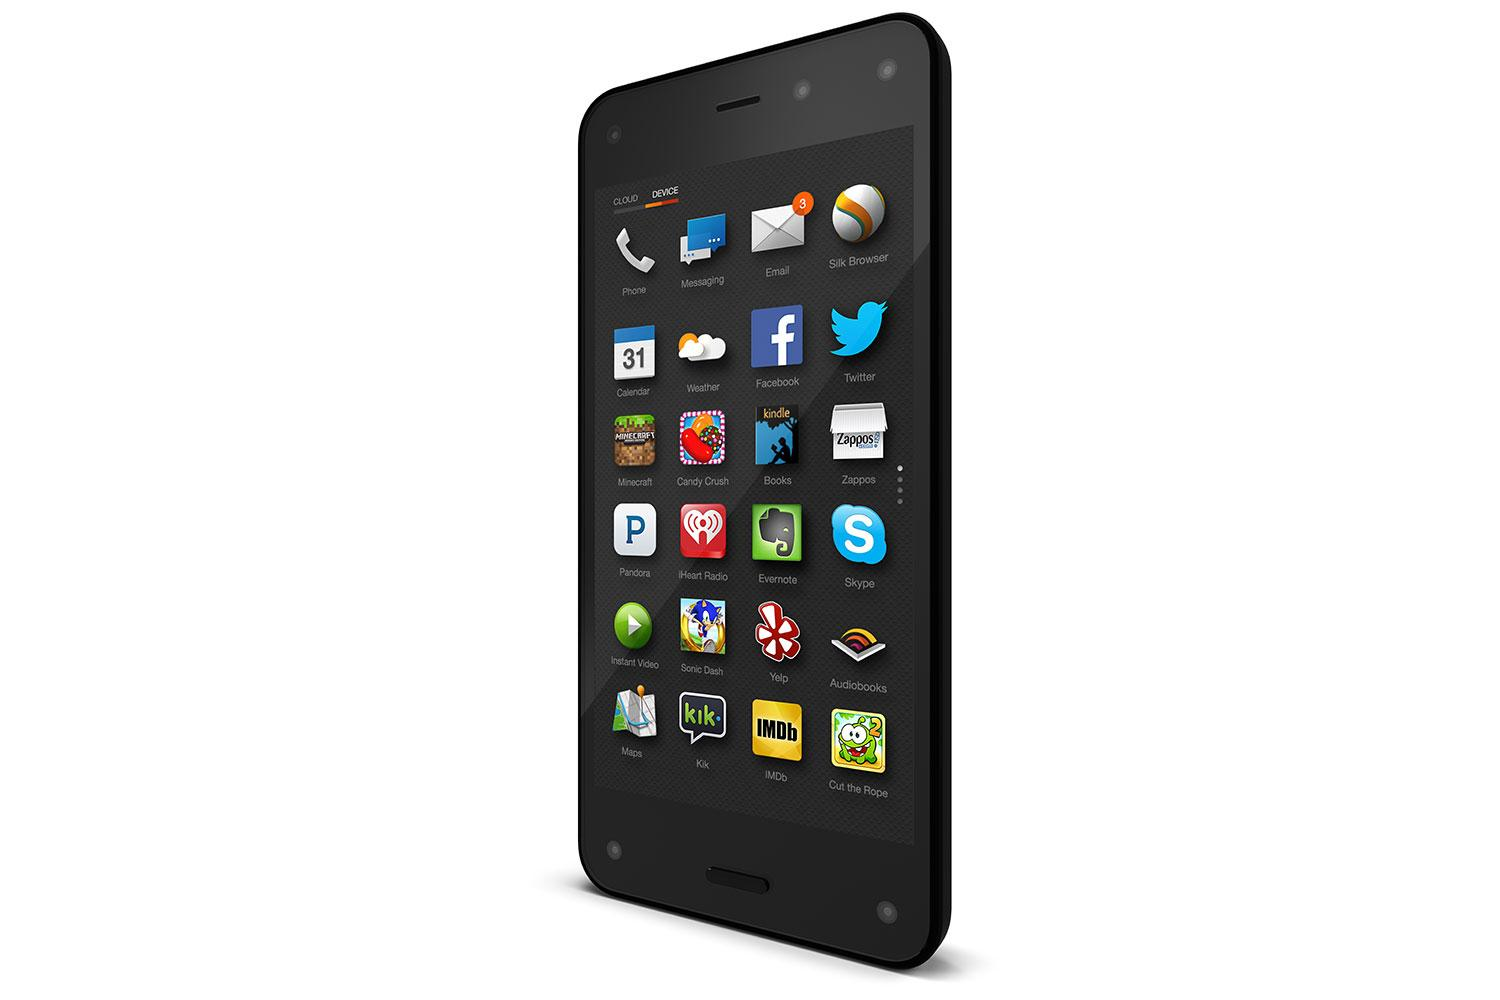 The Fire Phone, what is holding it back from being the best?